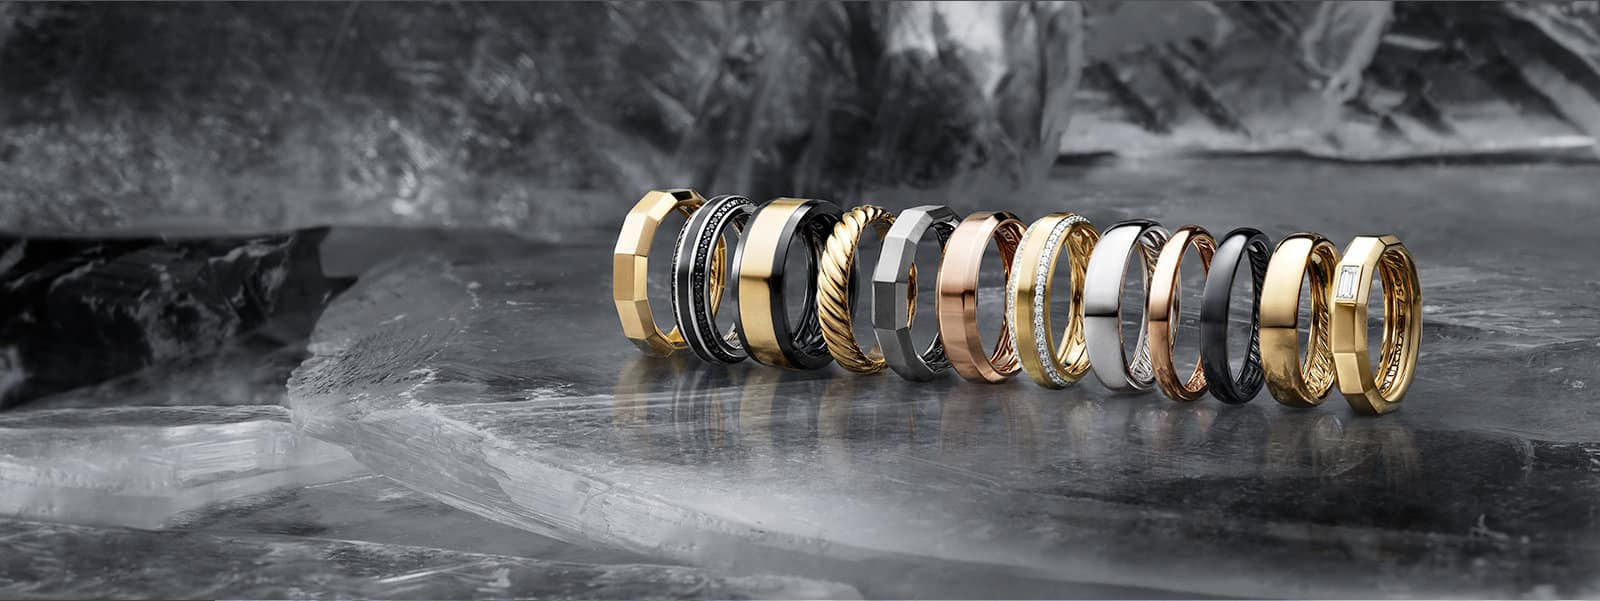 A row of men's bands in a mix of 18K yellow of rose gold, sterling silver, black or grey titanium with or without white or black diamonds, on a sheet of ice.